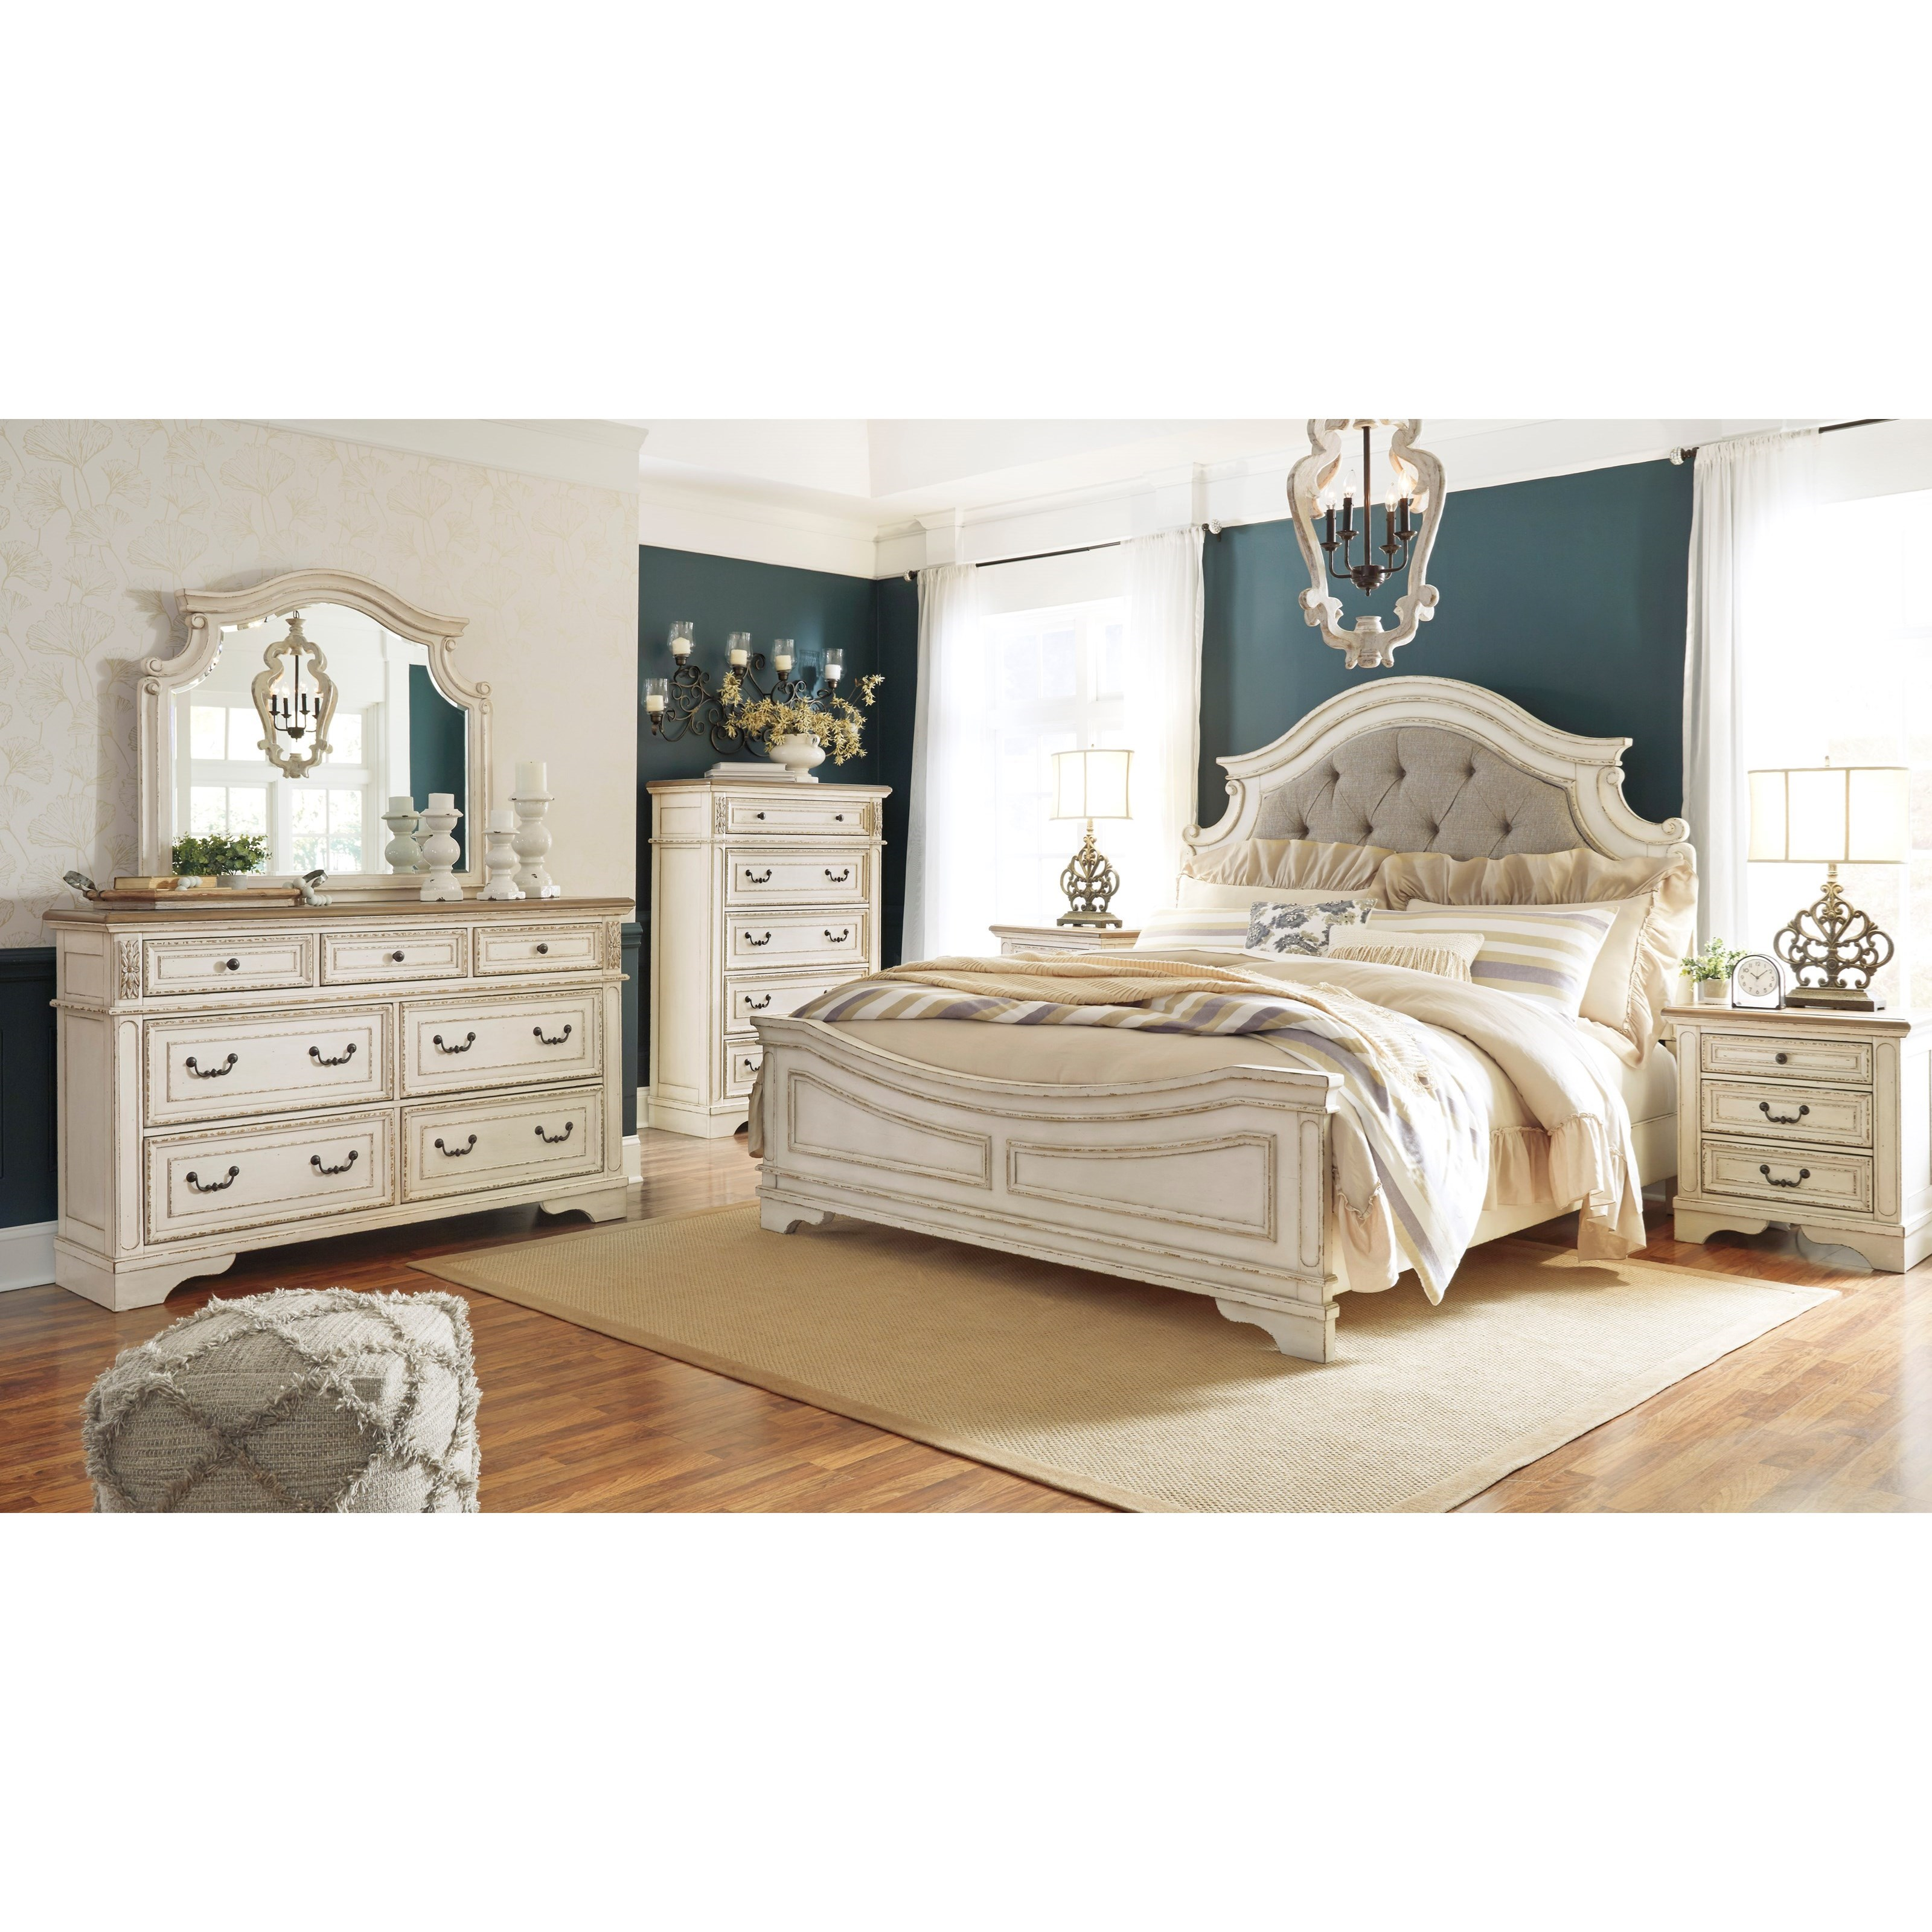 Signature Design By Ashley Realyn Queen Bedroom Group